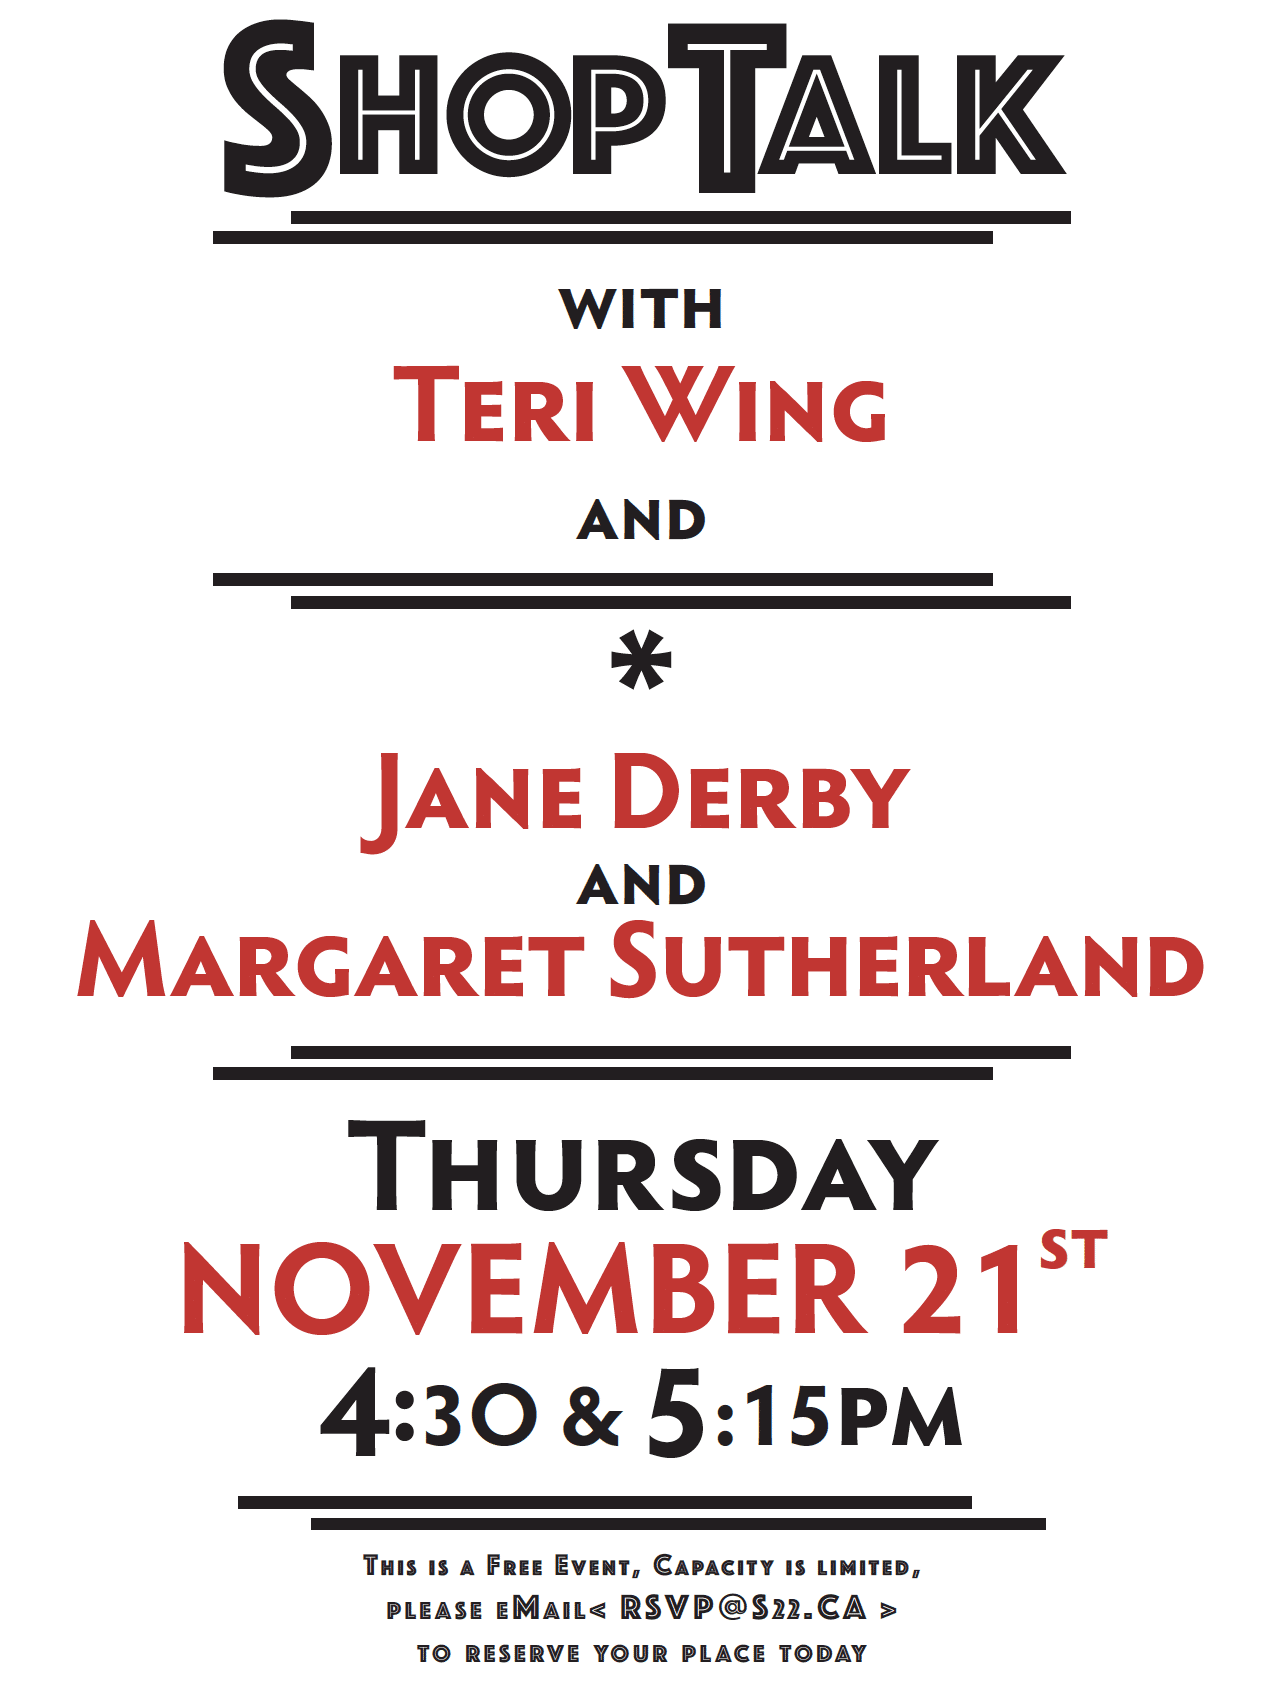 ShopTalk with Teri Wing, Margaret Sutherland and Jane Derby